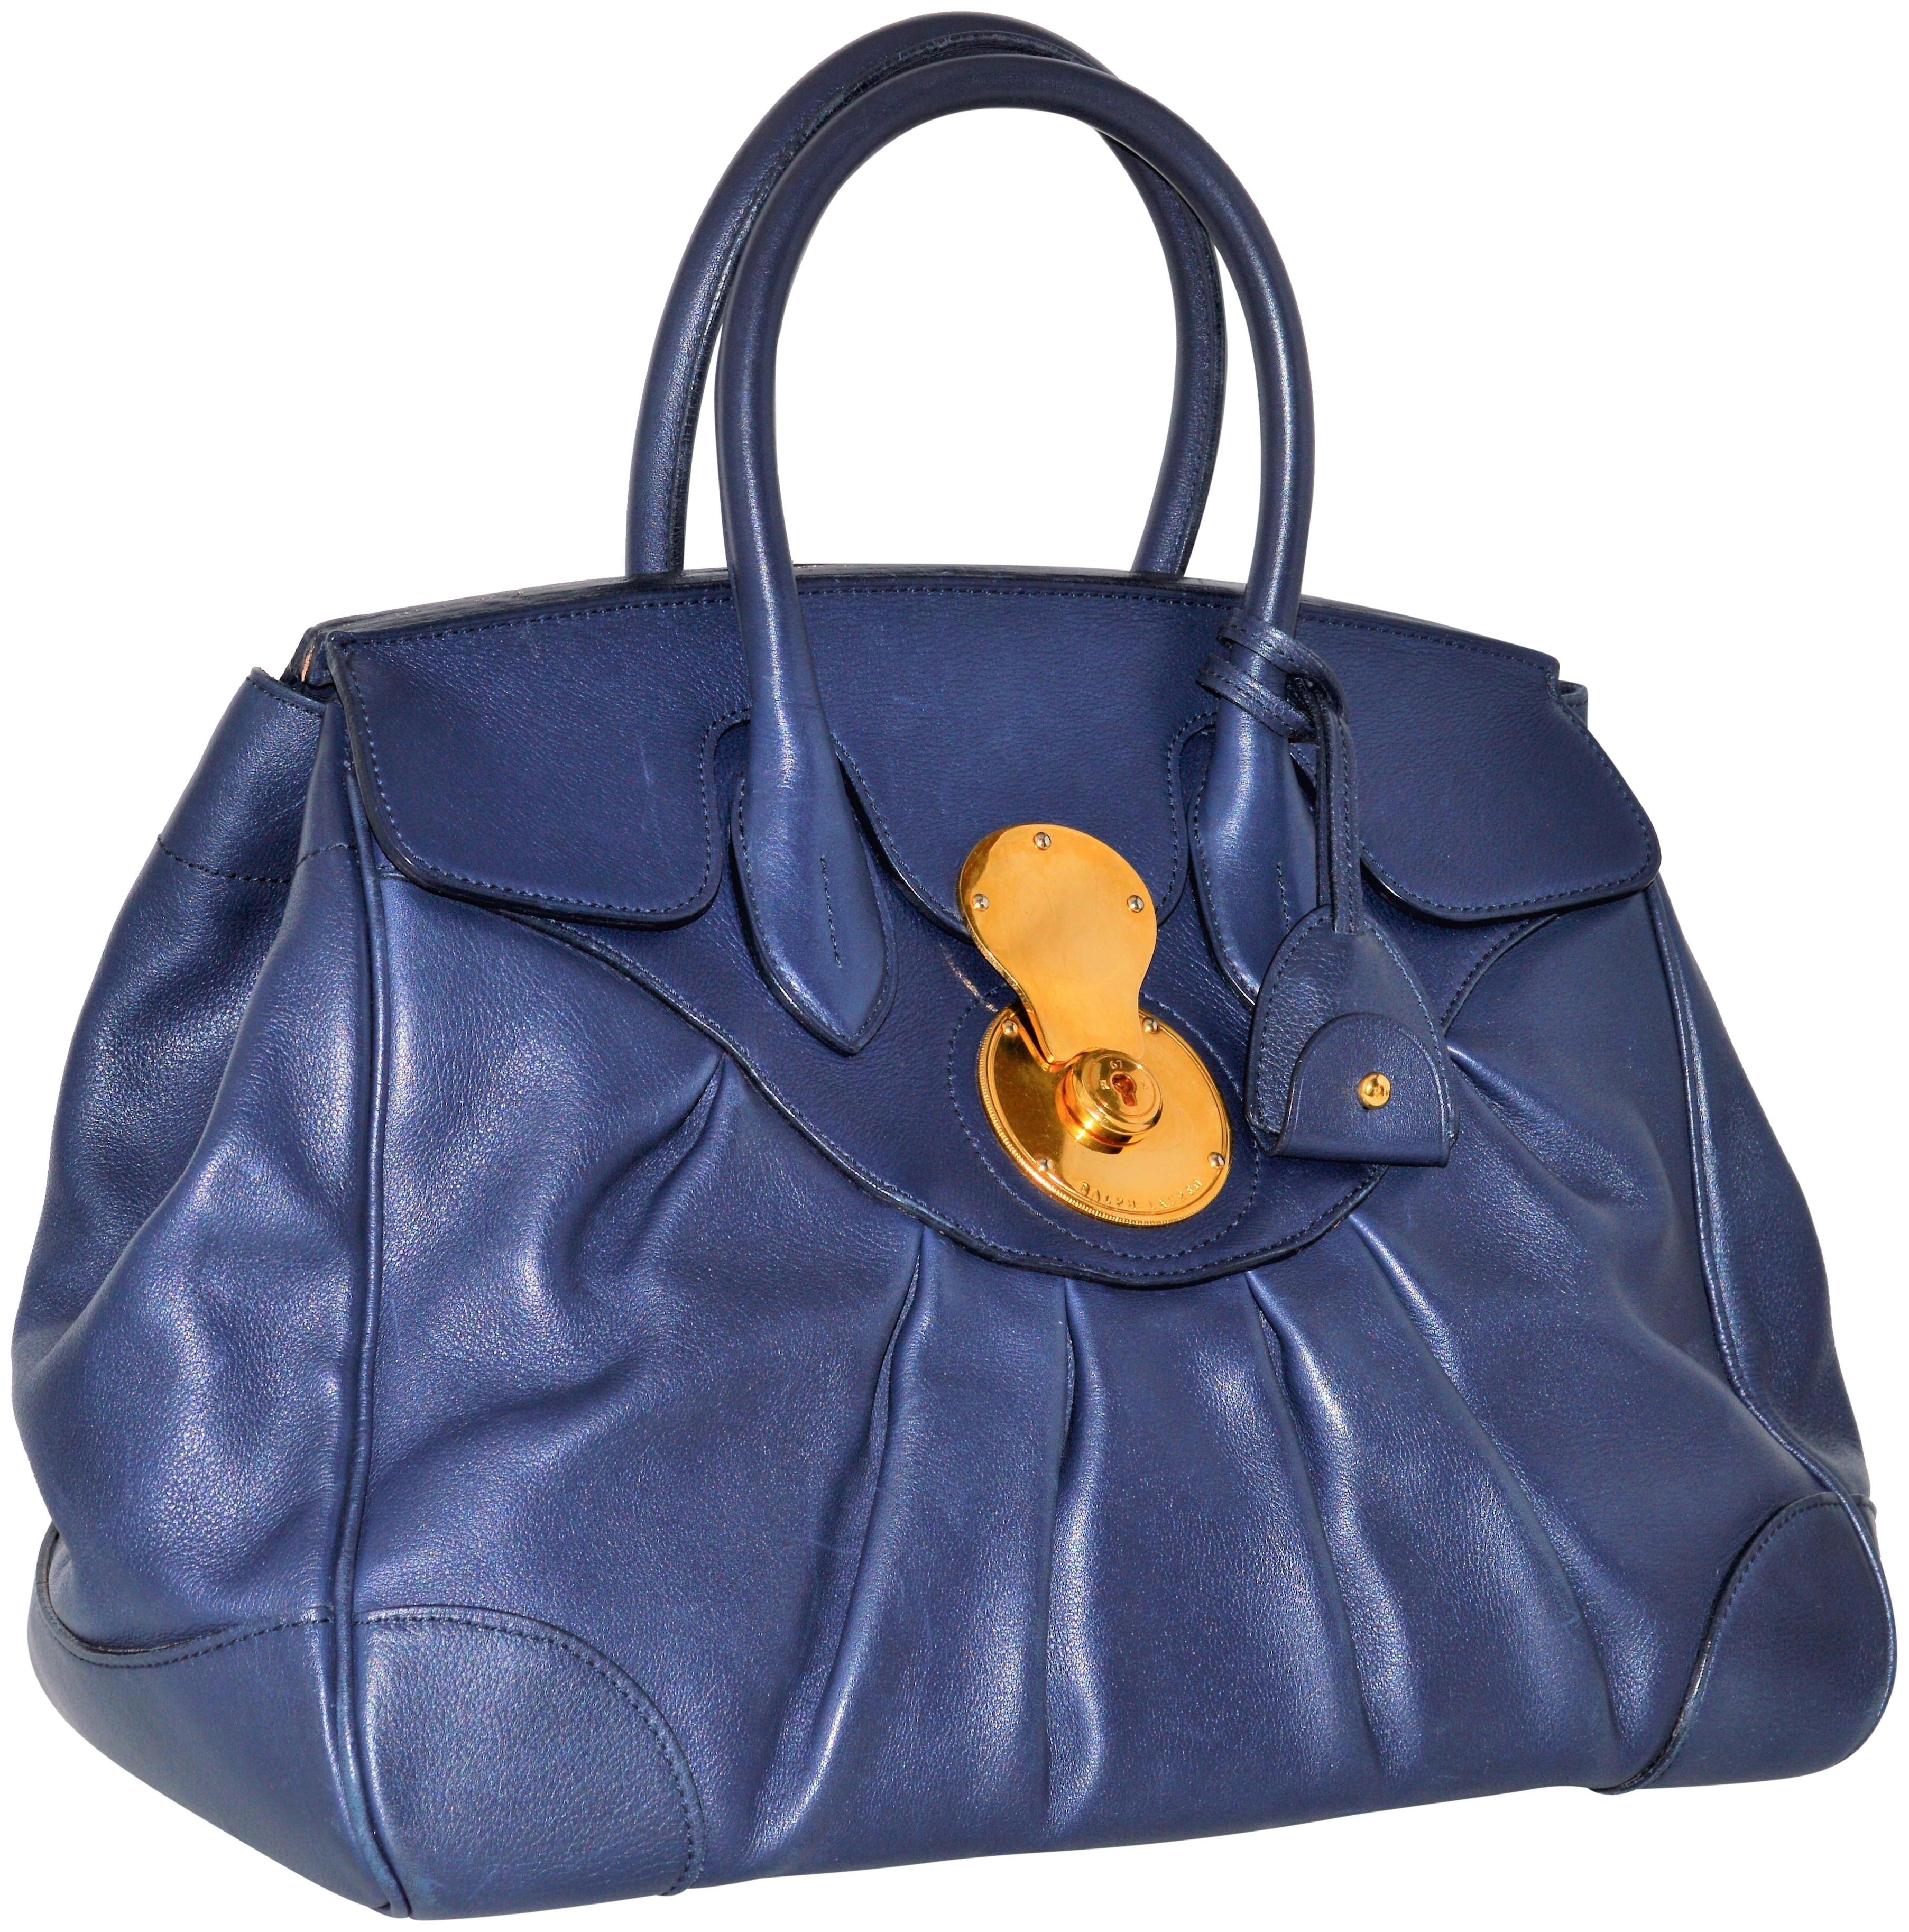 Ralph Lauren Collection Ricky Tote Satchel in blue ...